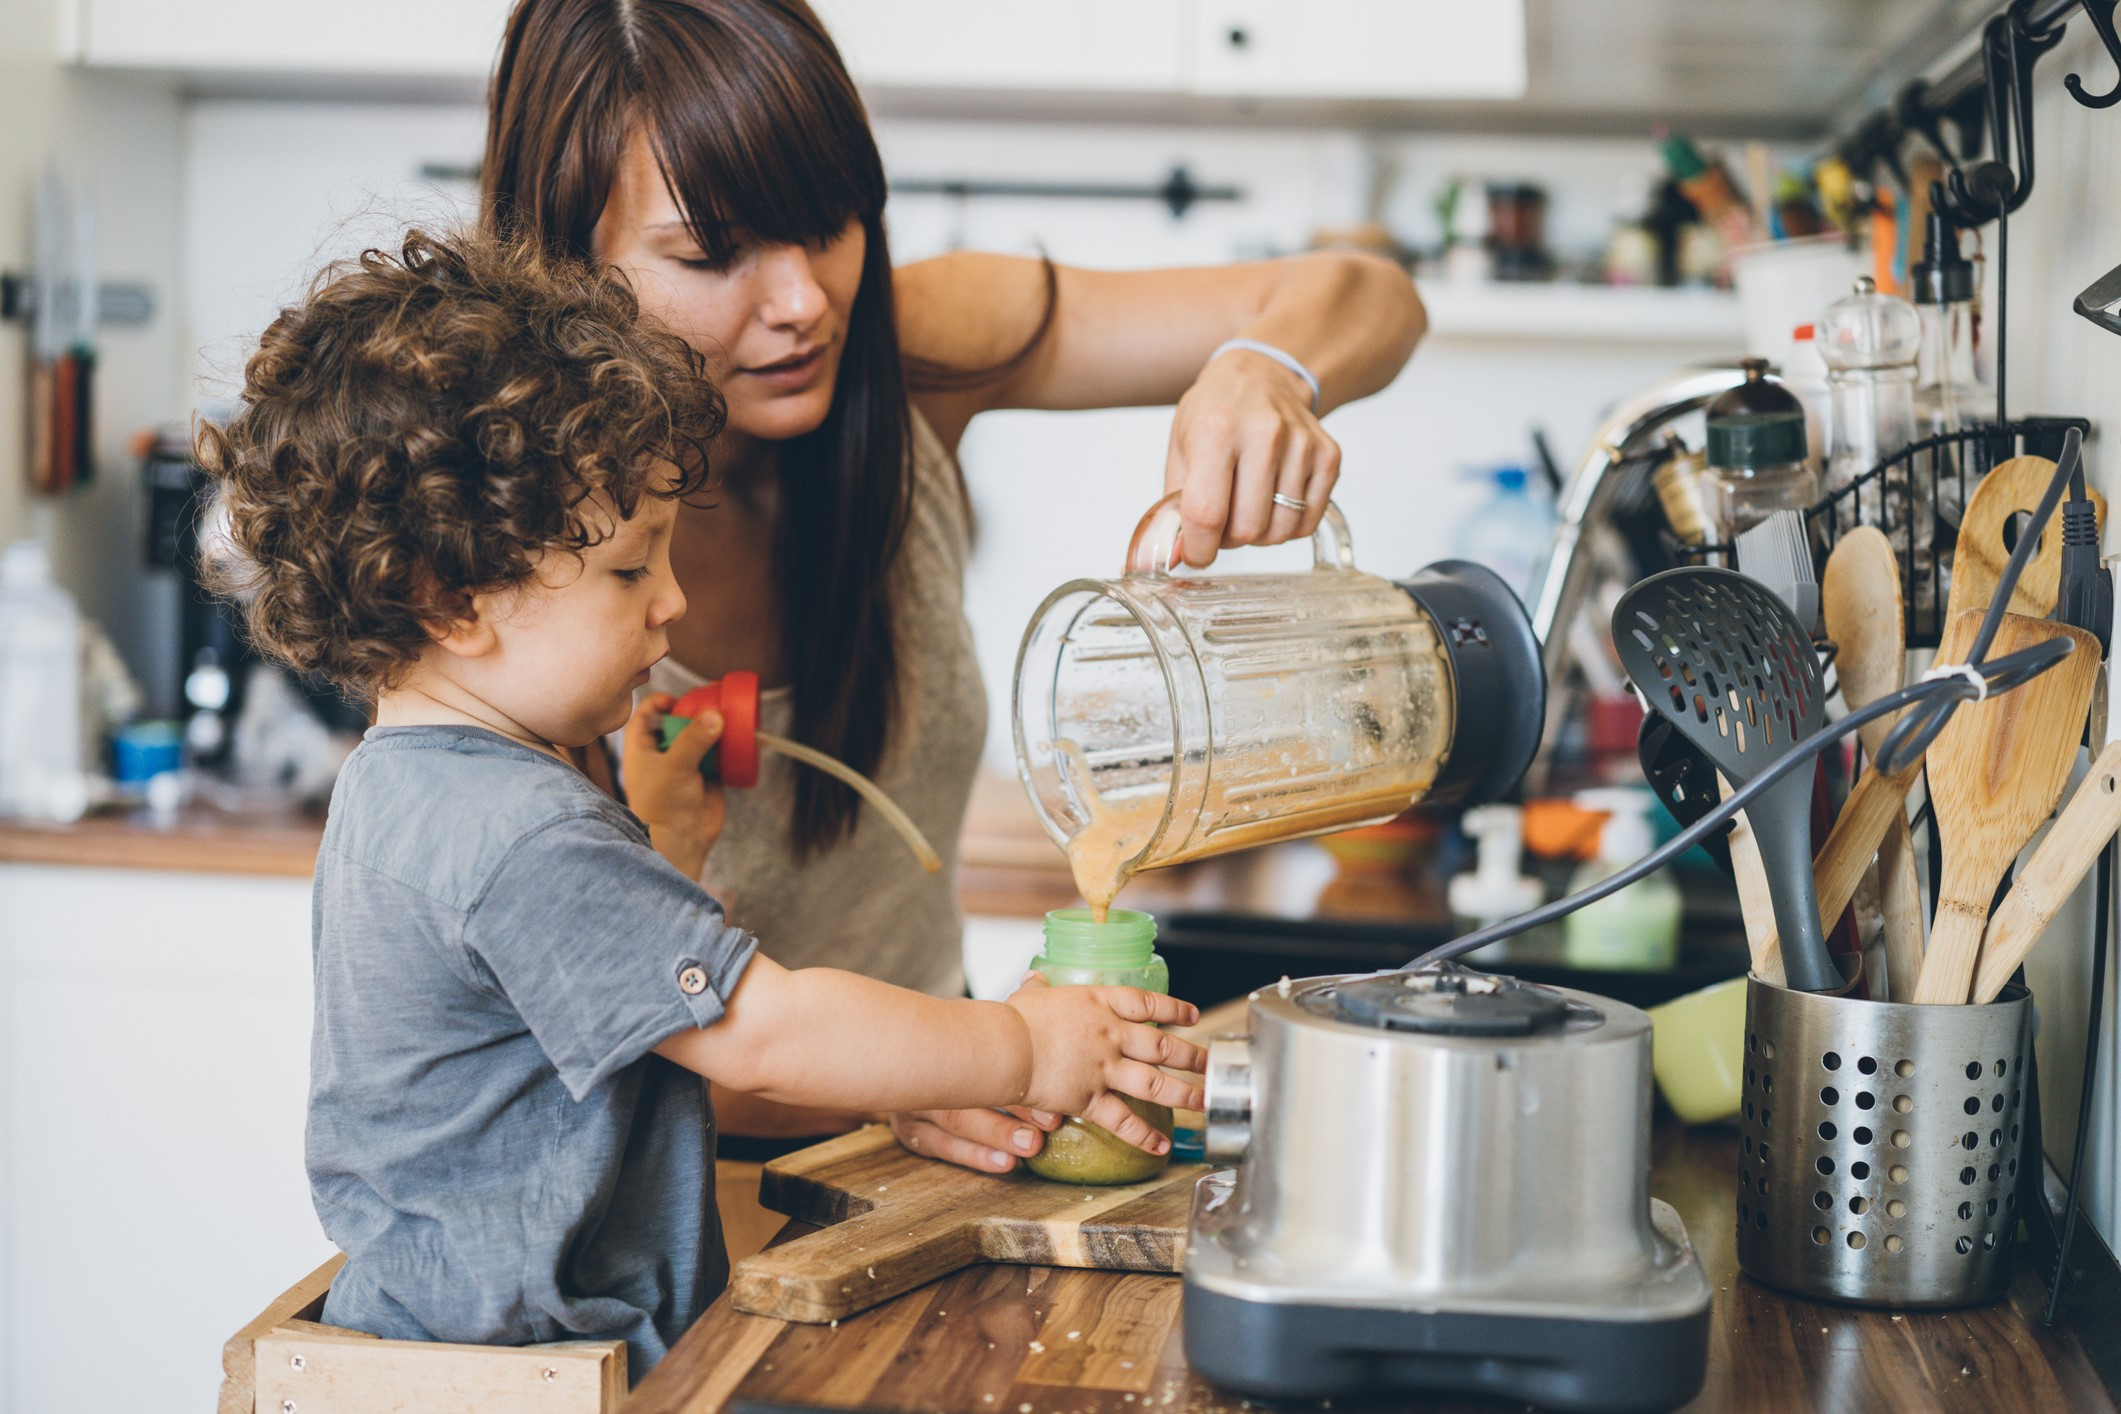 Appliances For Small Spaces And Kitchens Don S Appliances Pittsburgh Pa